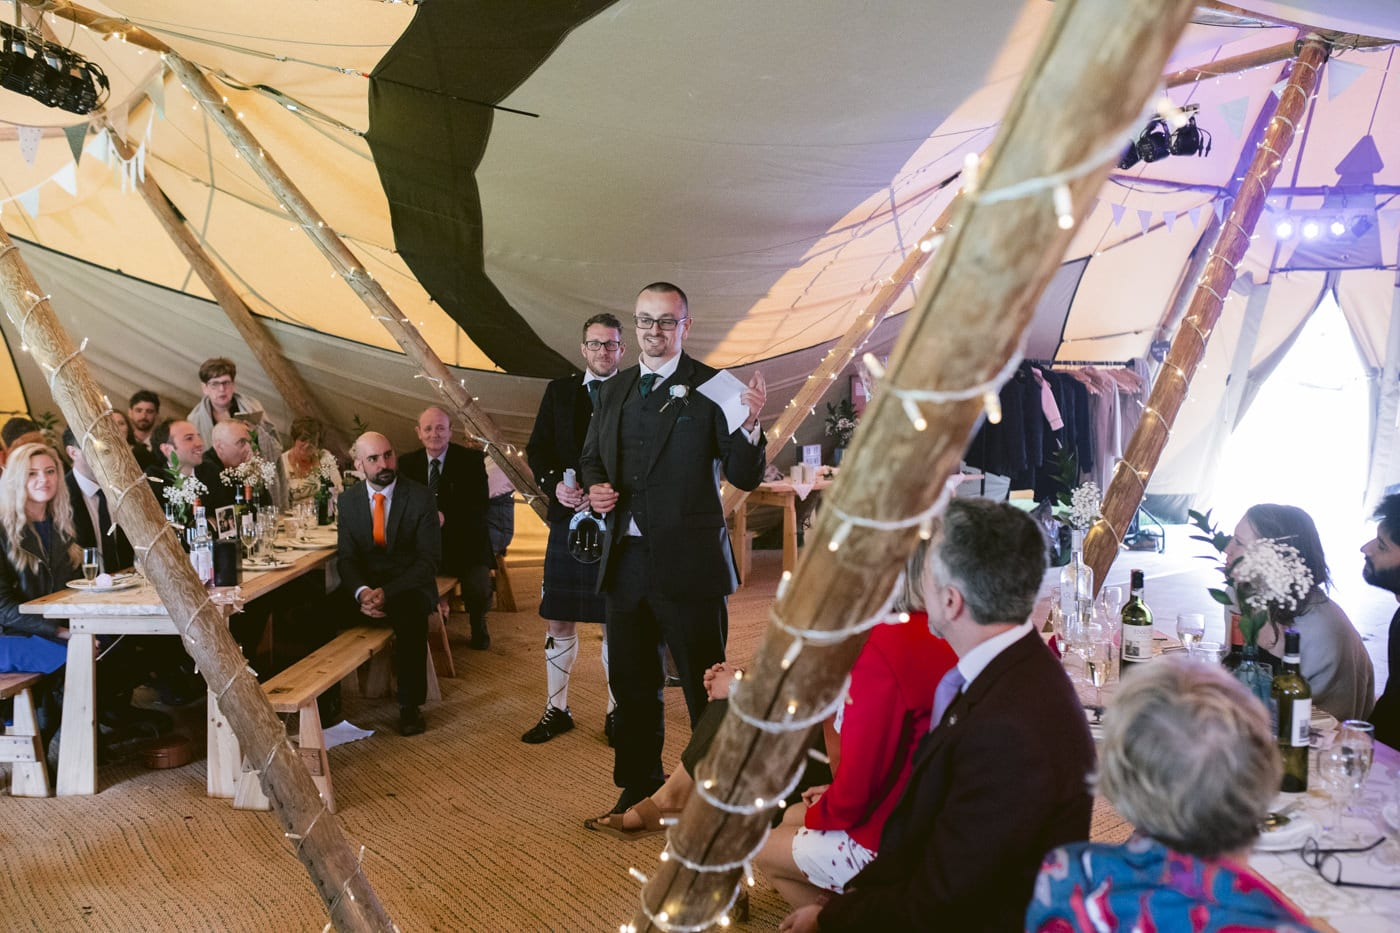 Guests Seated on Bentches in Tipi Tent